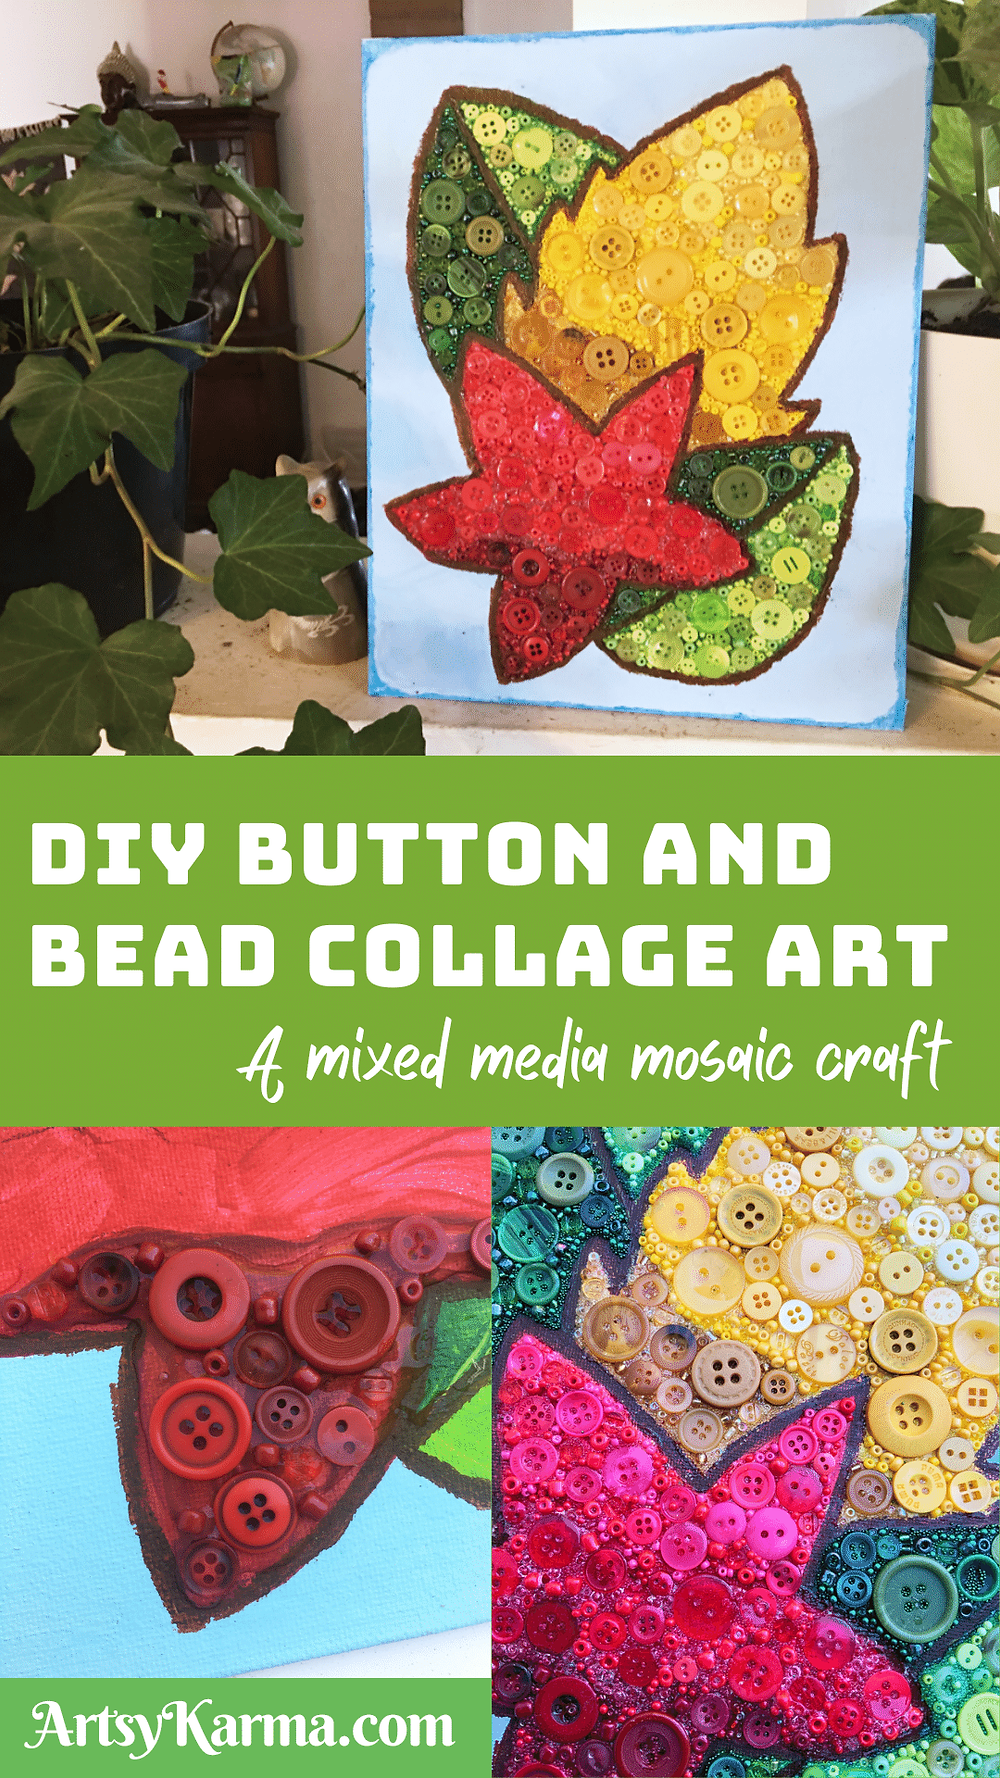 DIY button and bead collage art